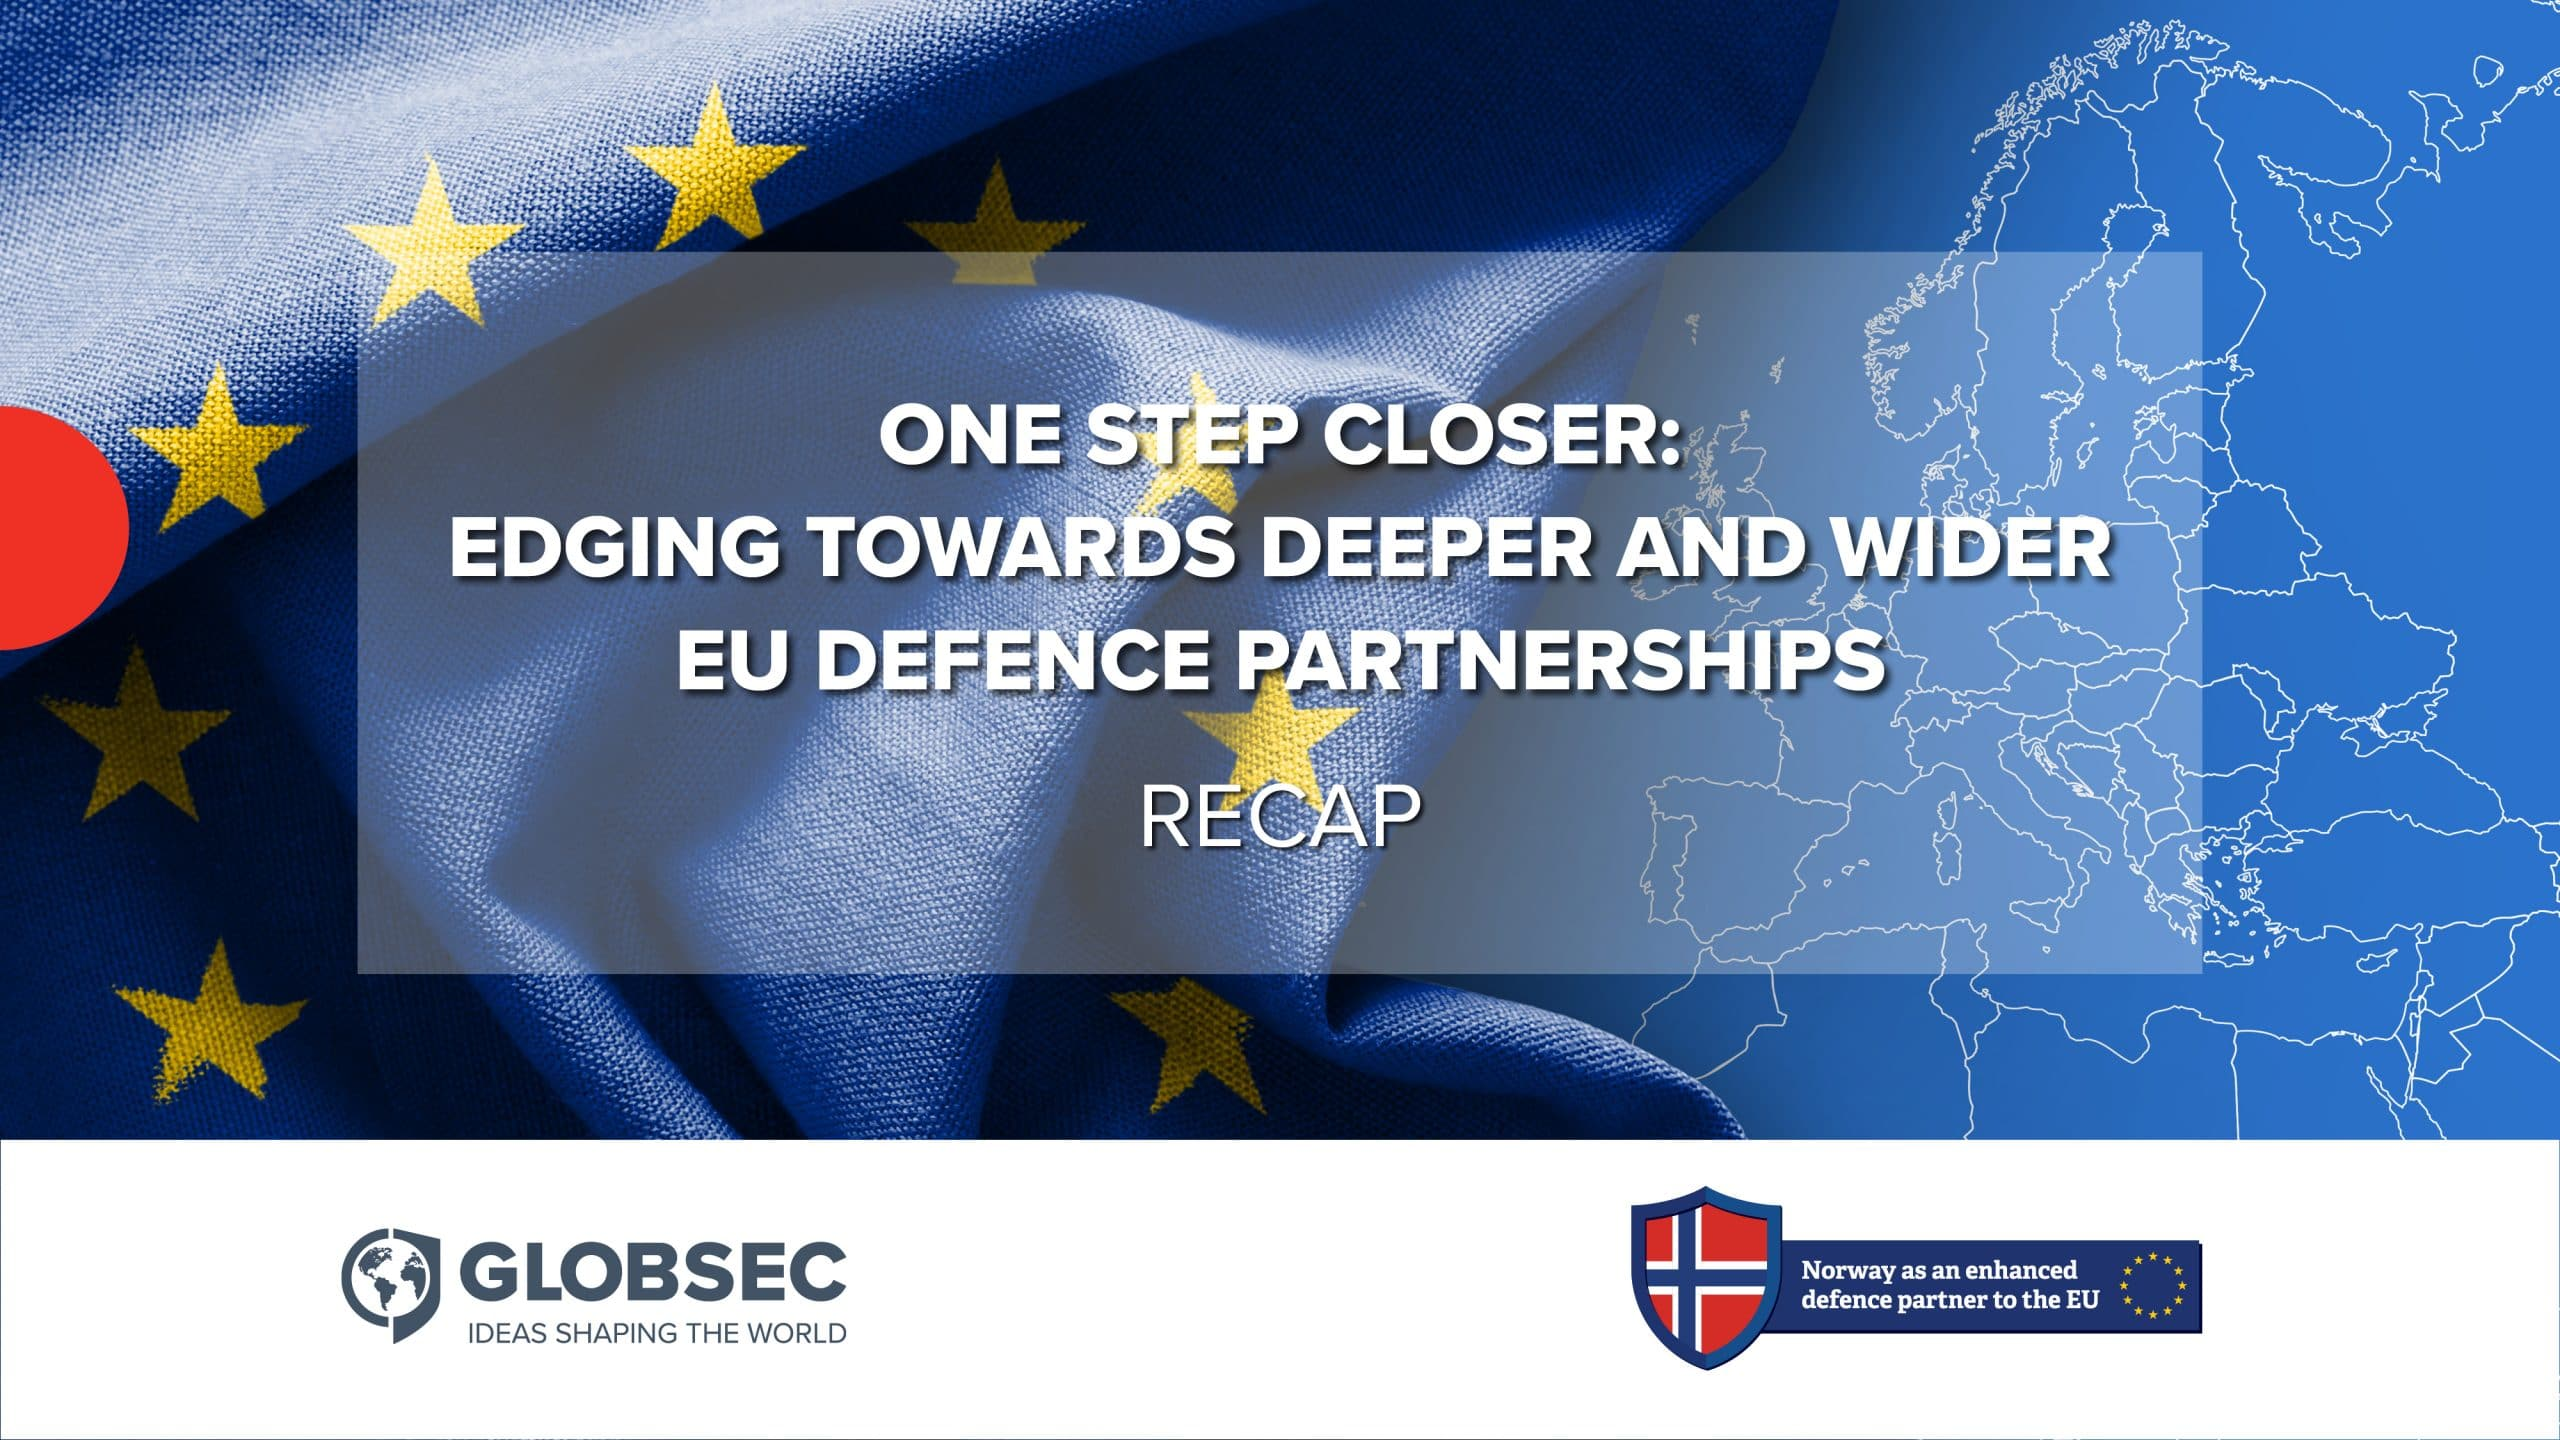 One Step Closer: Edging Towards Deeper and Wider EU Defence Partnerships: Recap